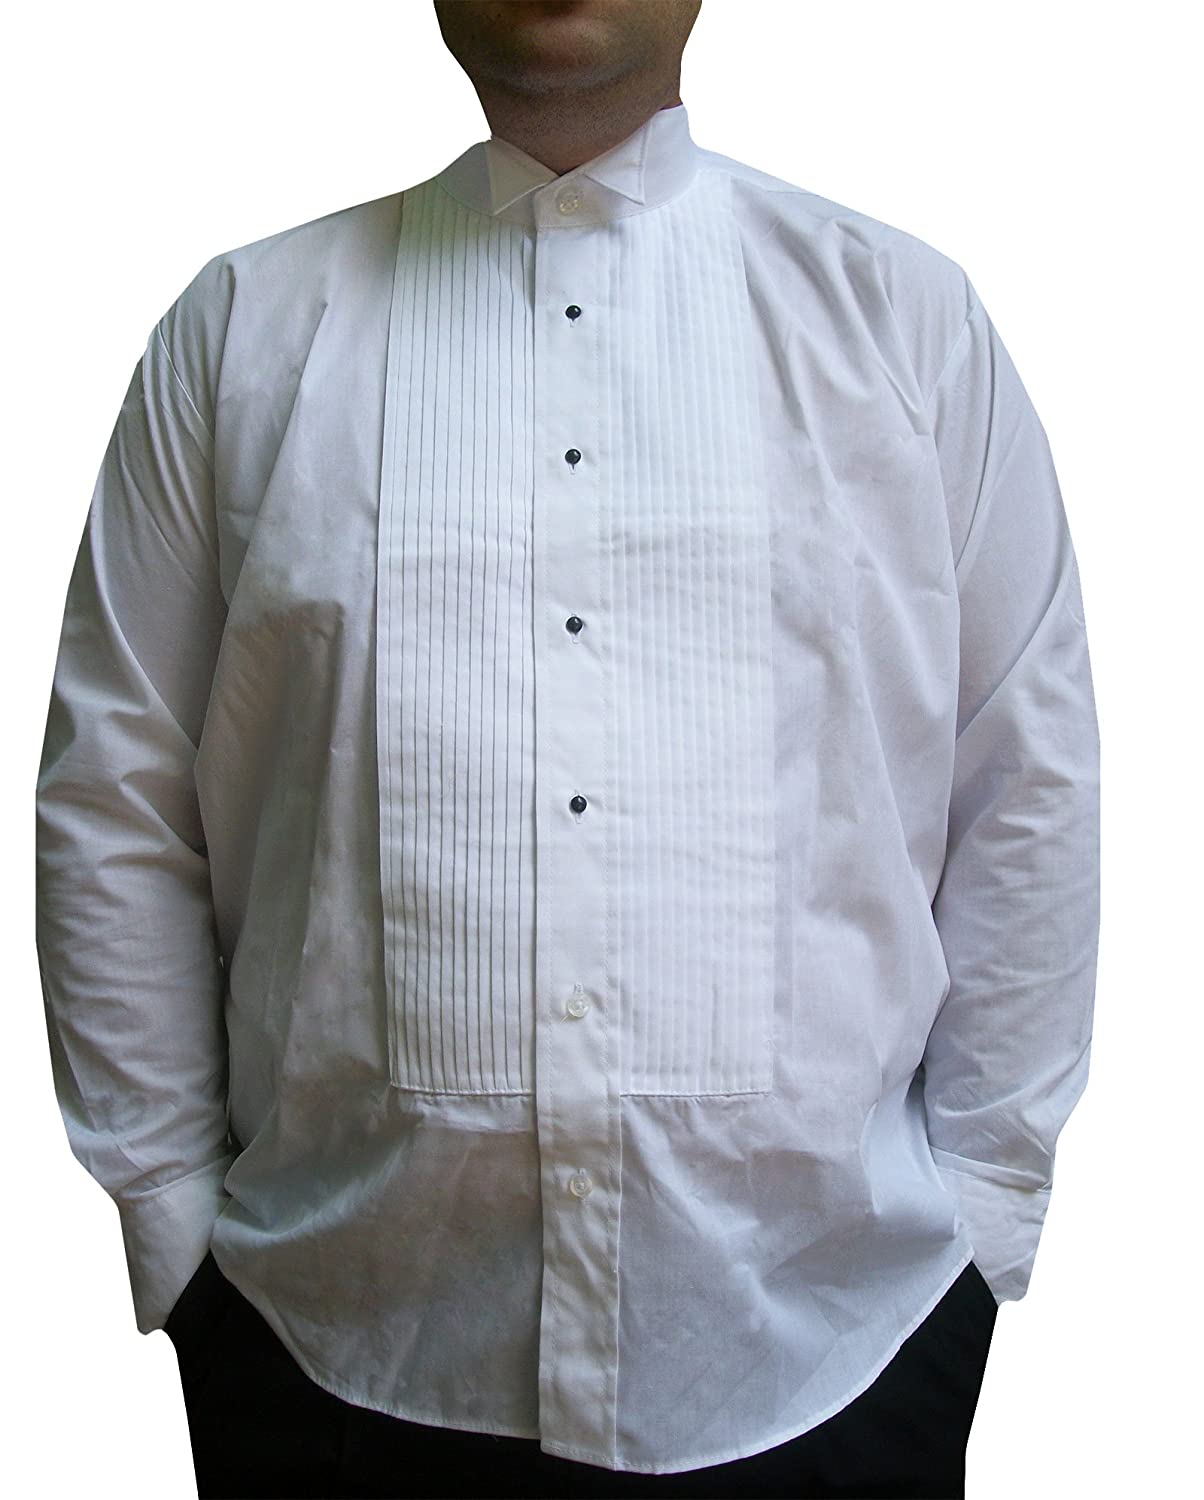 Broadway Tuxmakers 100% Cotton White Pleated Tuxedo Shirt Wing Collar, Men's Men's 302M